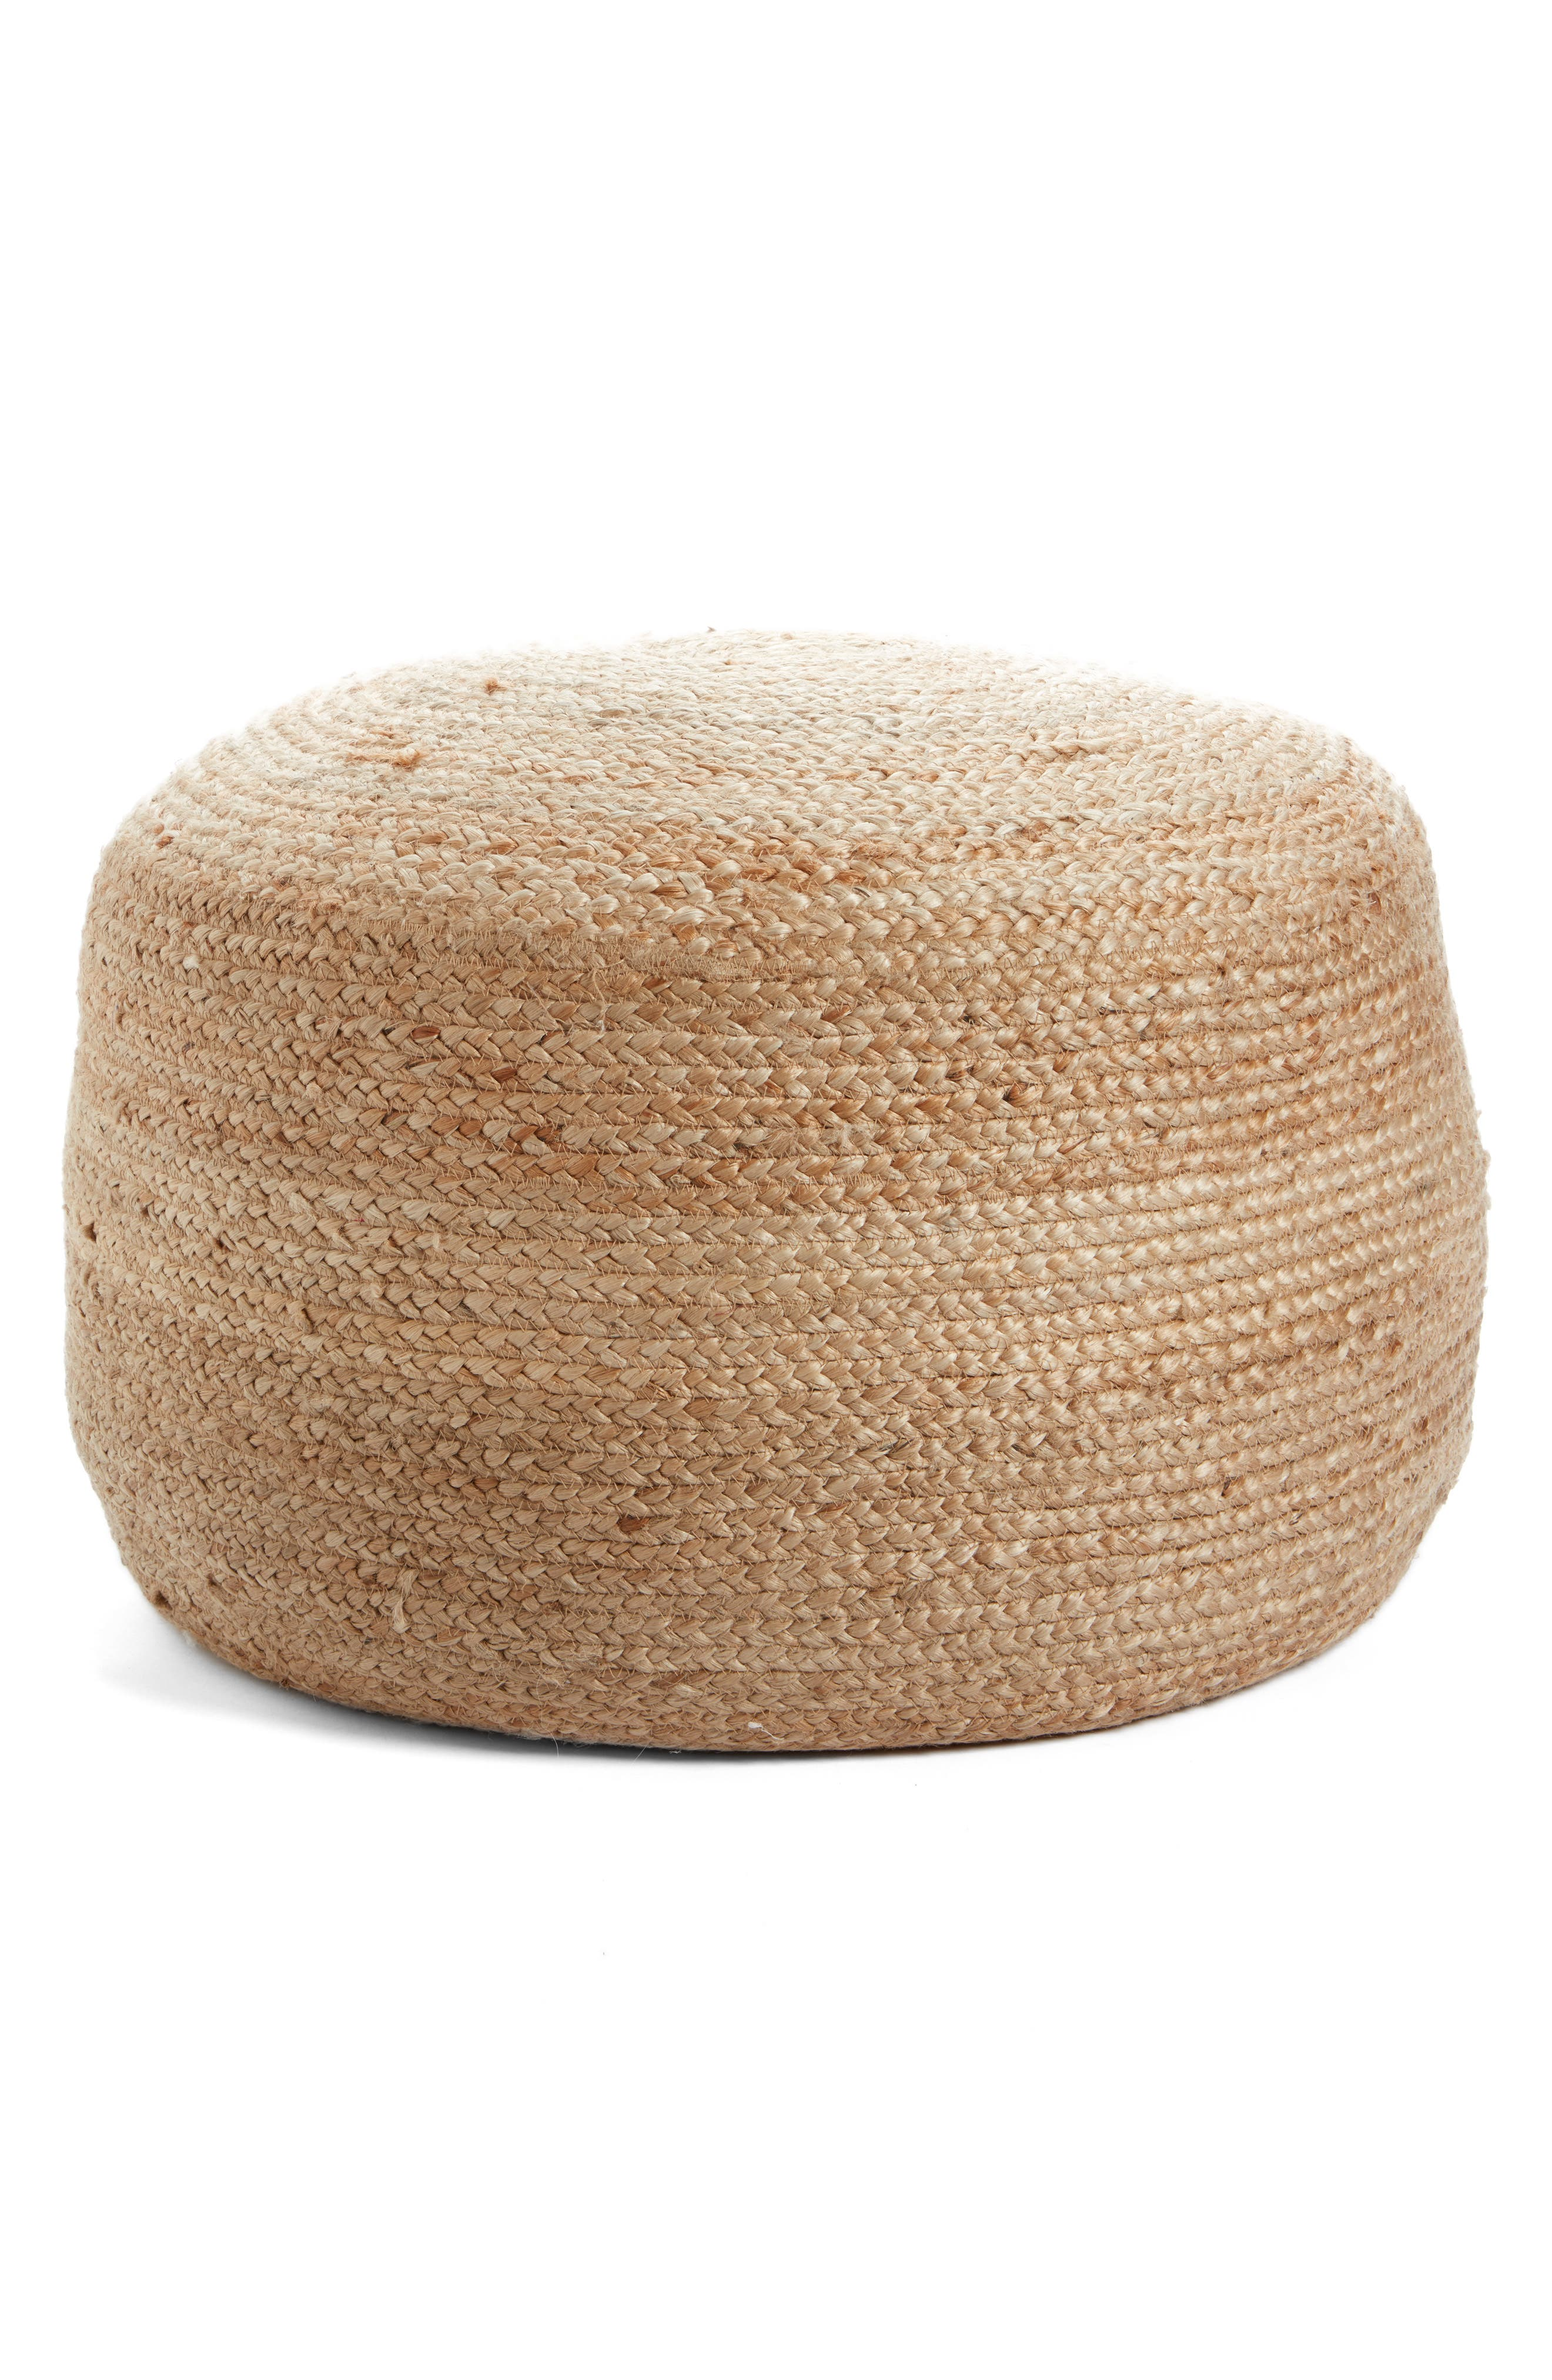 Indoor/Outdoor Jute Pouf,                             Main thumbnail 1, color,                             101